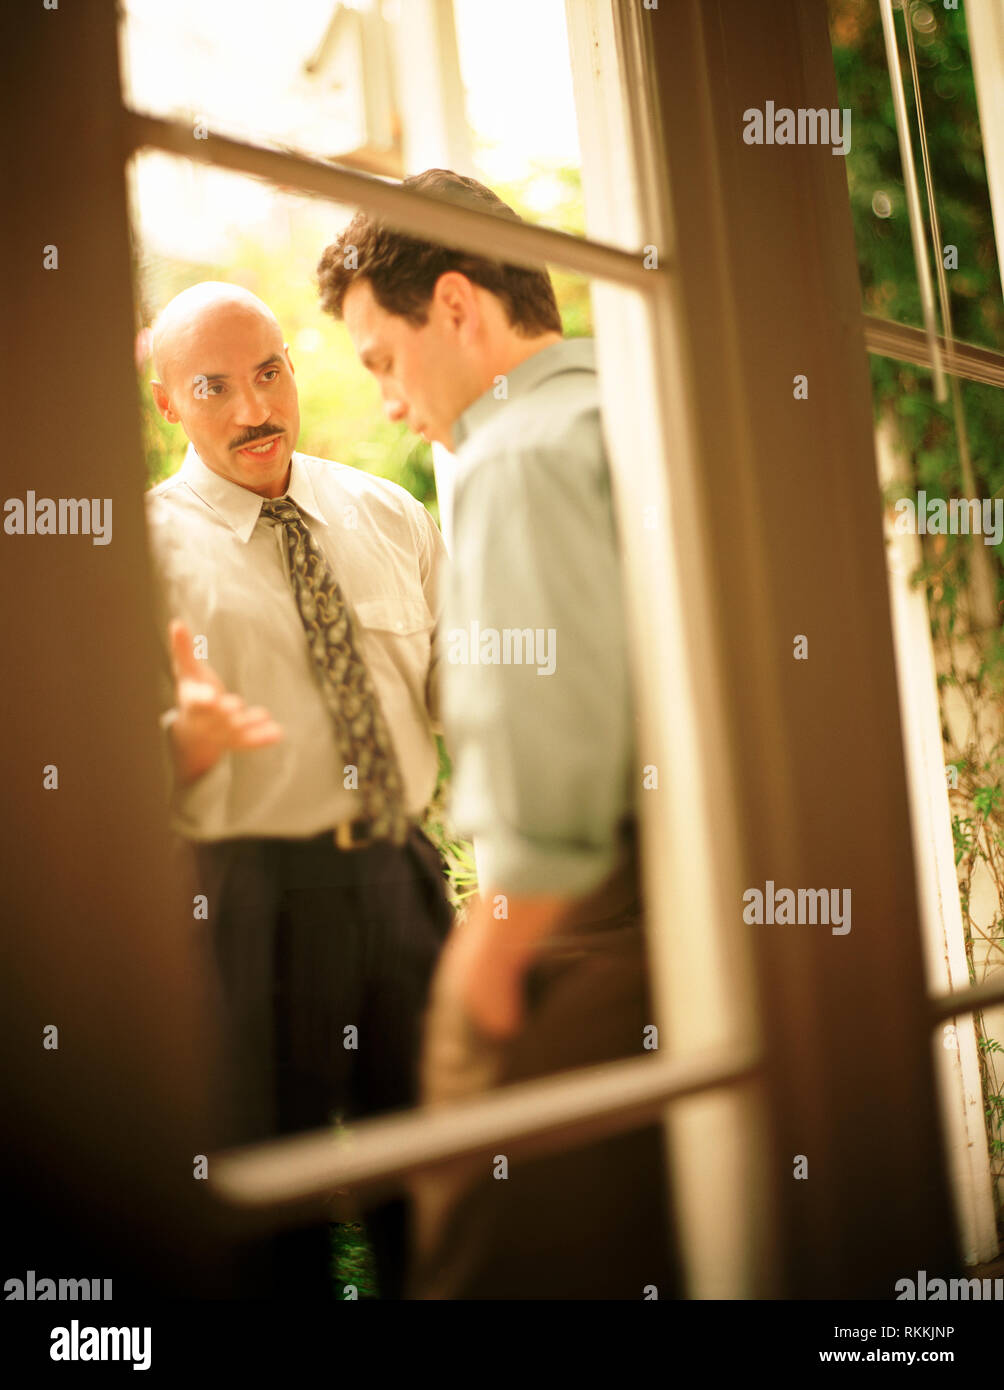 Side view of two men engaged in a serious discussion. - Stock Image